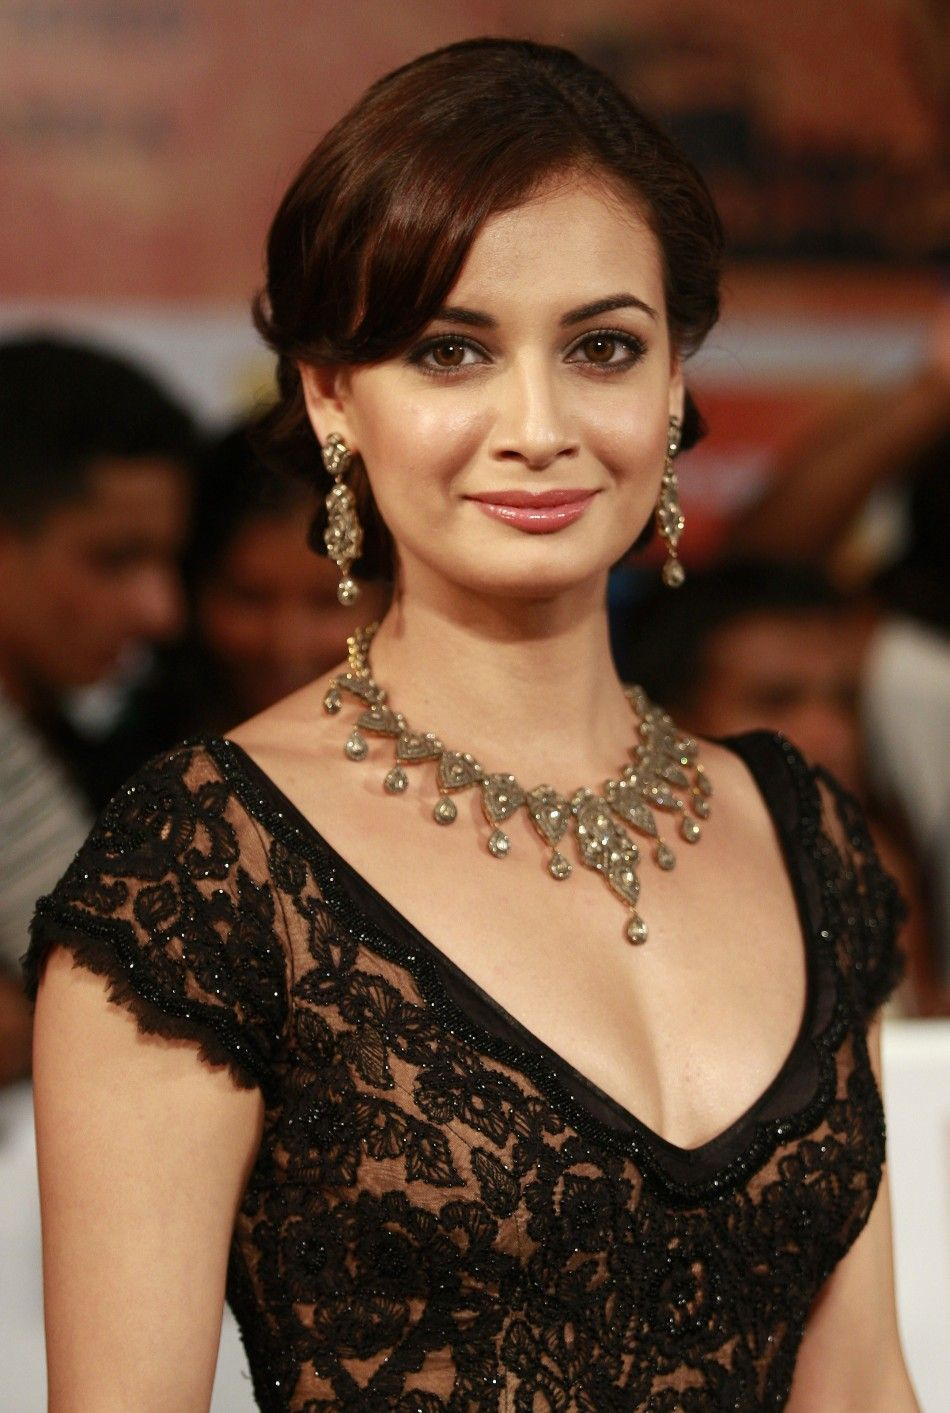 Dia Mirza nude (92 photo), Sexy, Fappening, Boobs, cleavage 2020